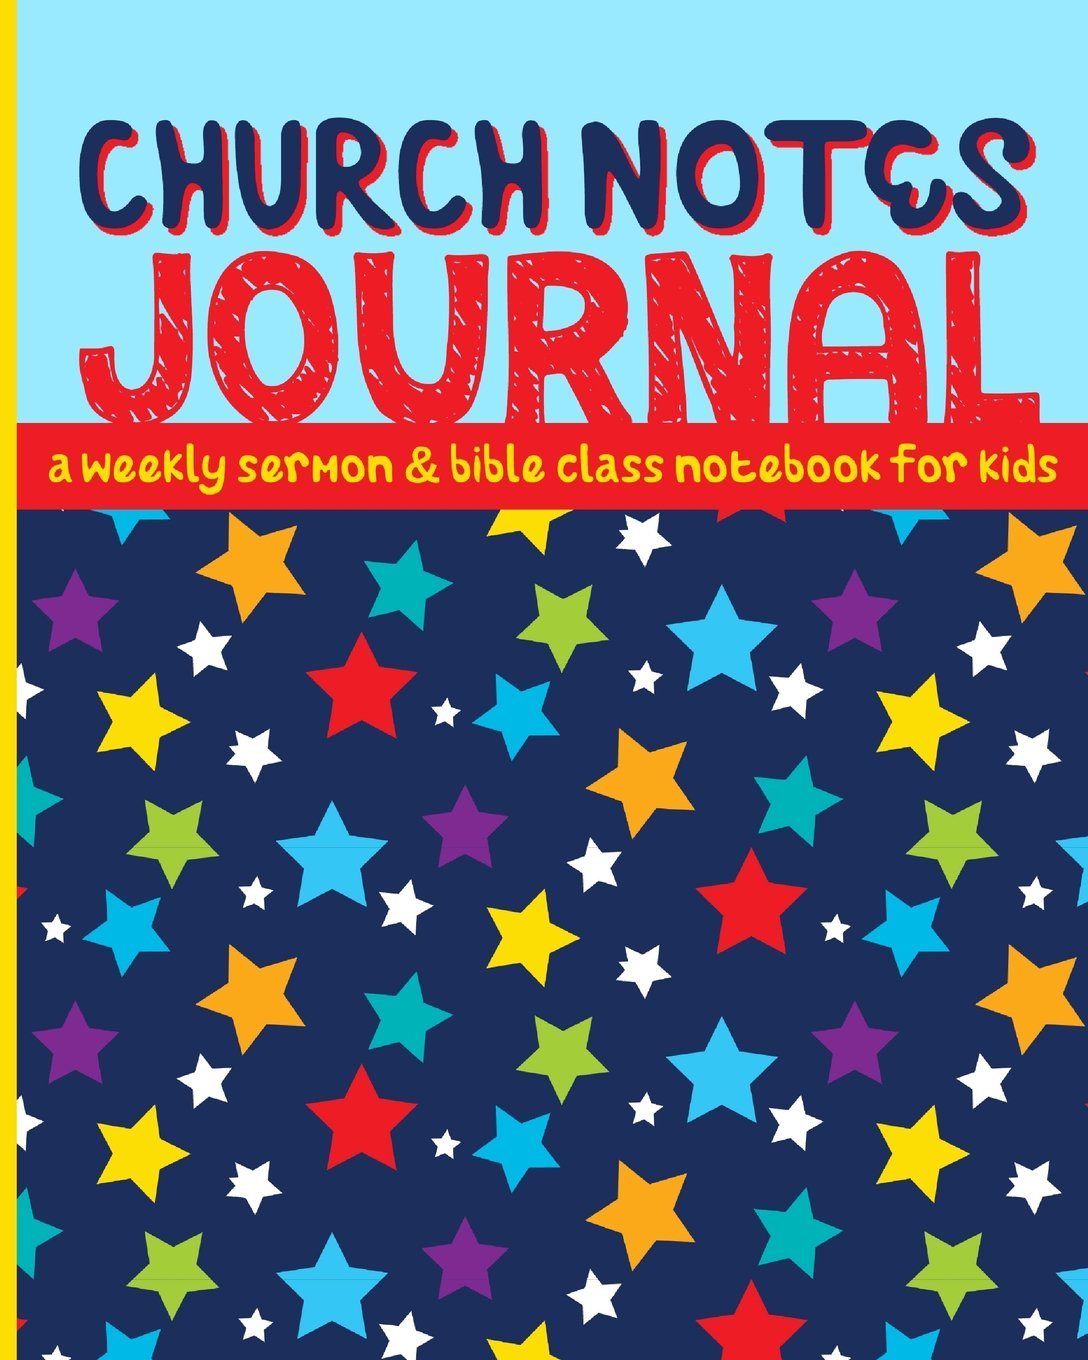 Church Notes Journal: A Weekly Sermon and Bible Class Notebook for Kids ages 7-11 (Bright Stars Cover) pdf